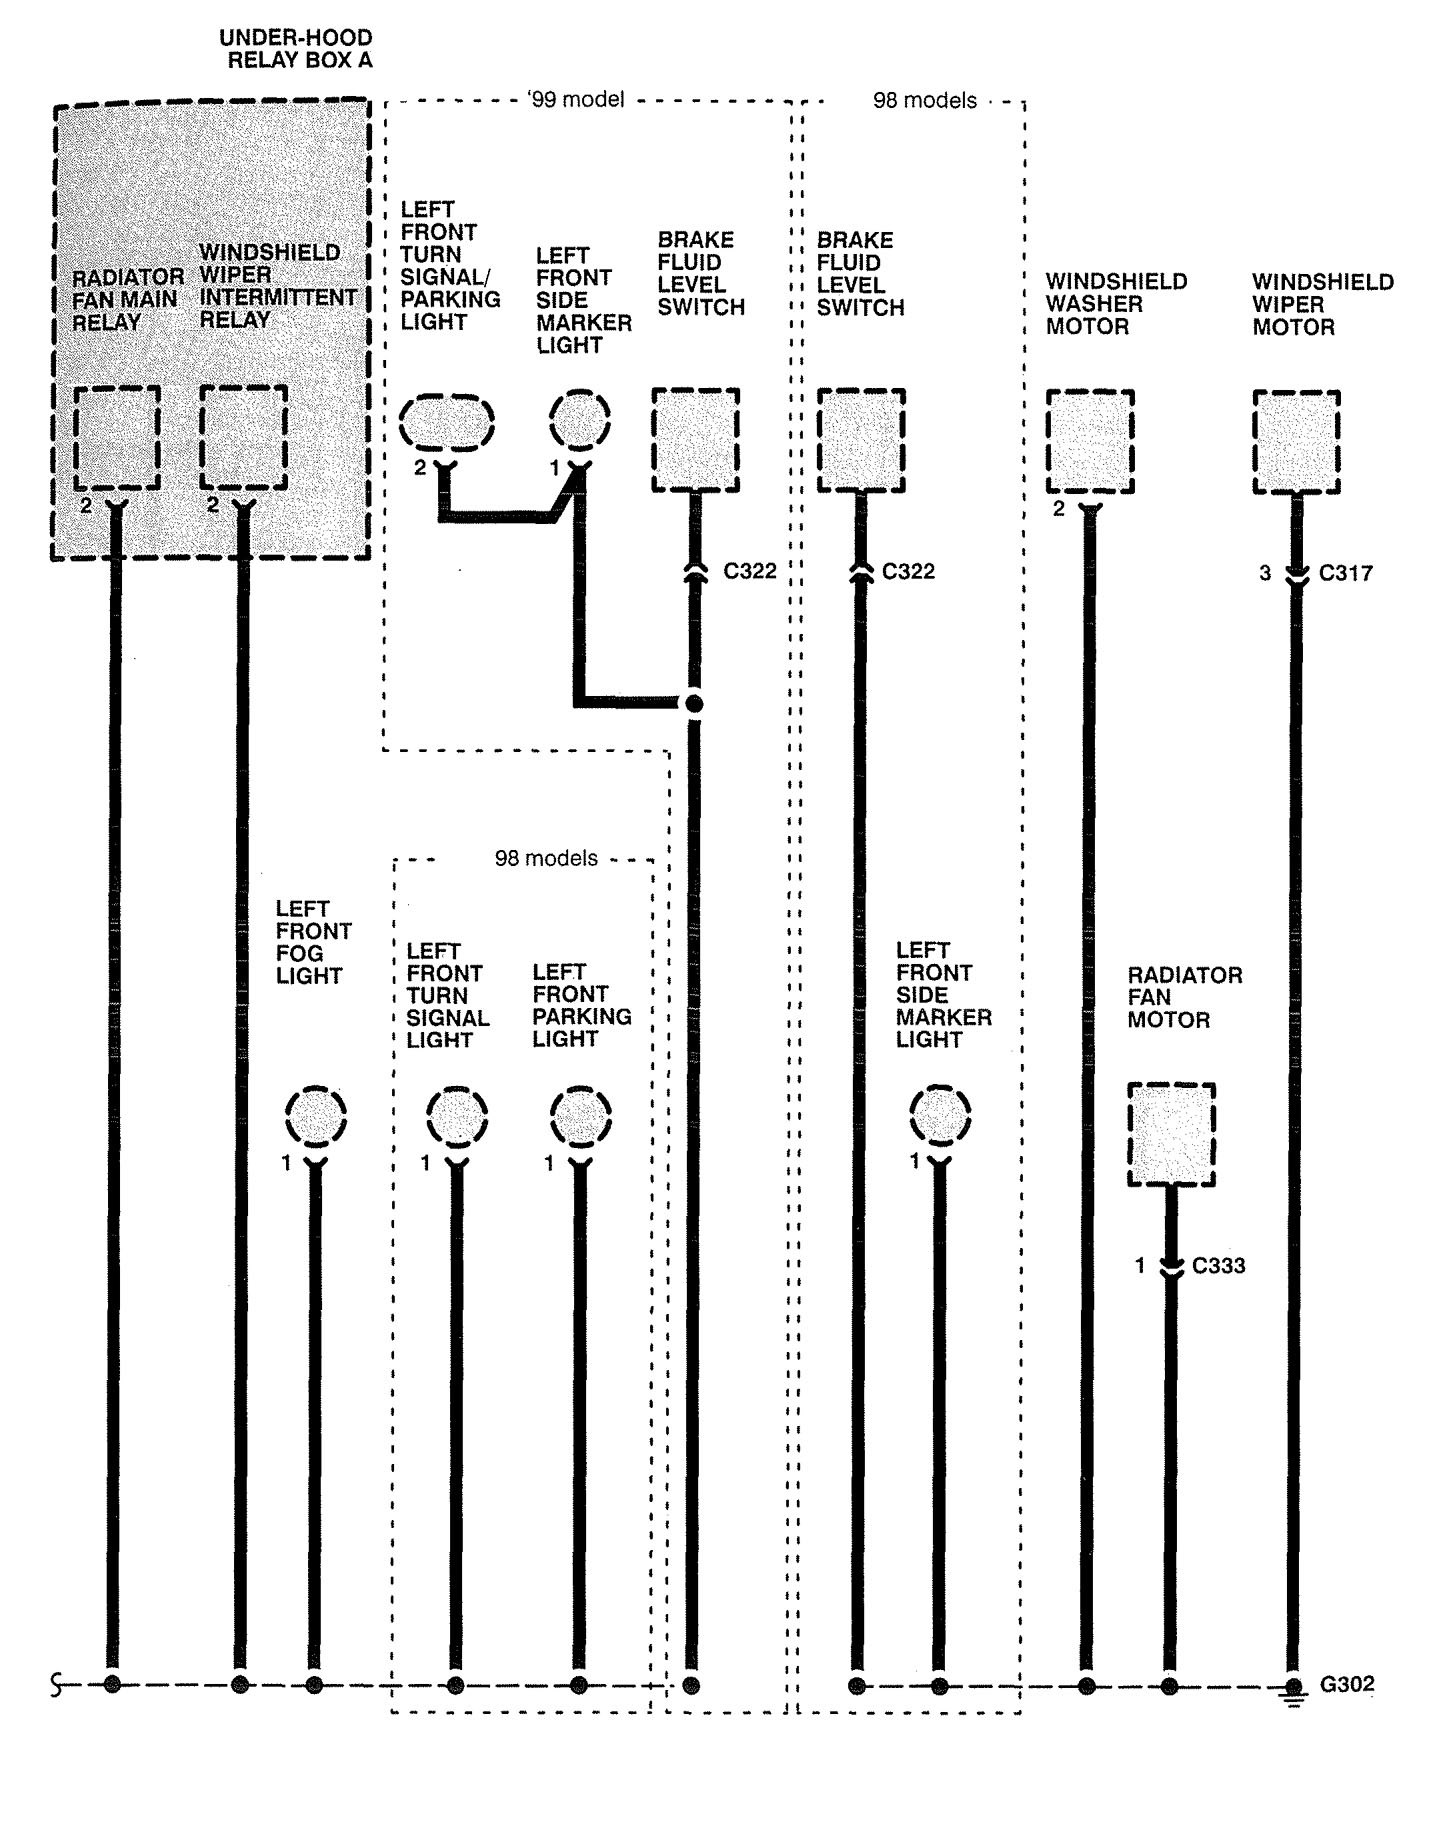 acura rl wiring diagram ground distribution v1 5 1996 acura rl (1996 1998) wiring diagrams ground distribution 2001 Dodge Caravan Wiring Diagram at mr168.co